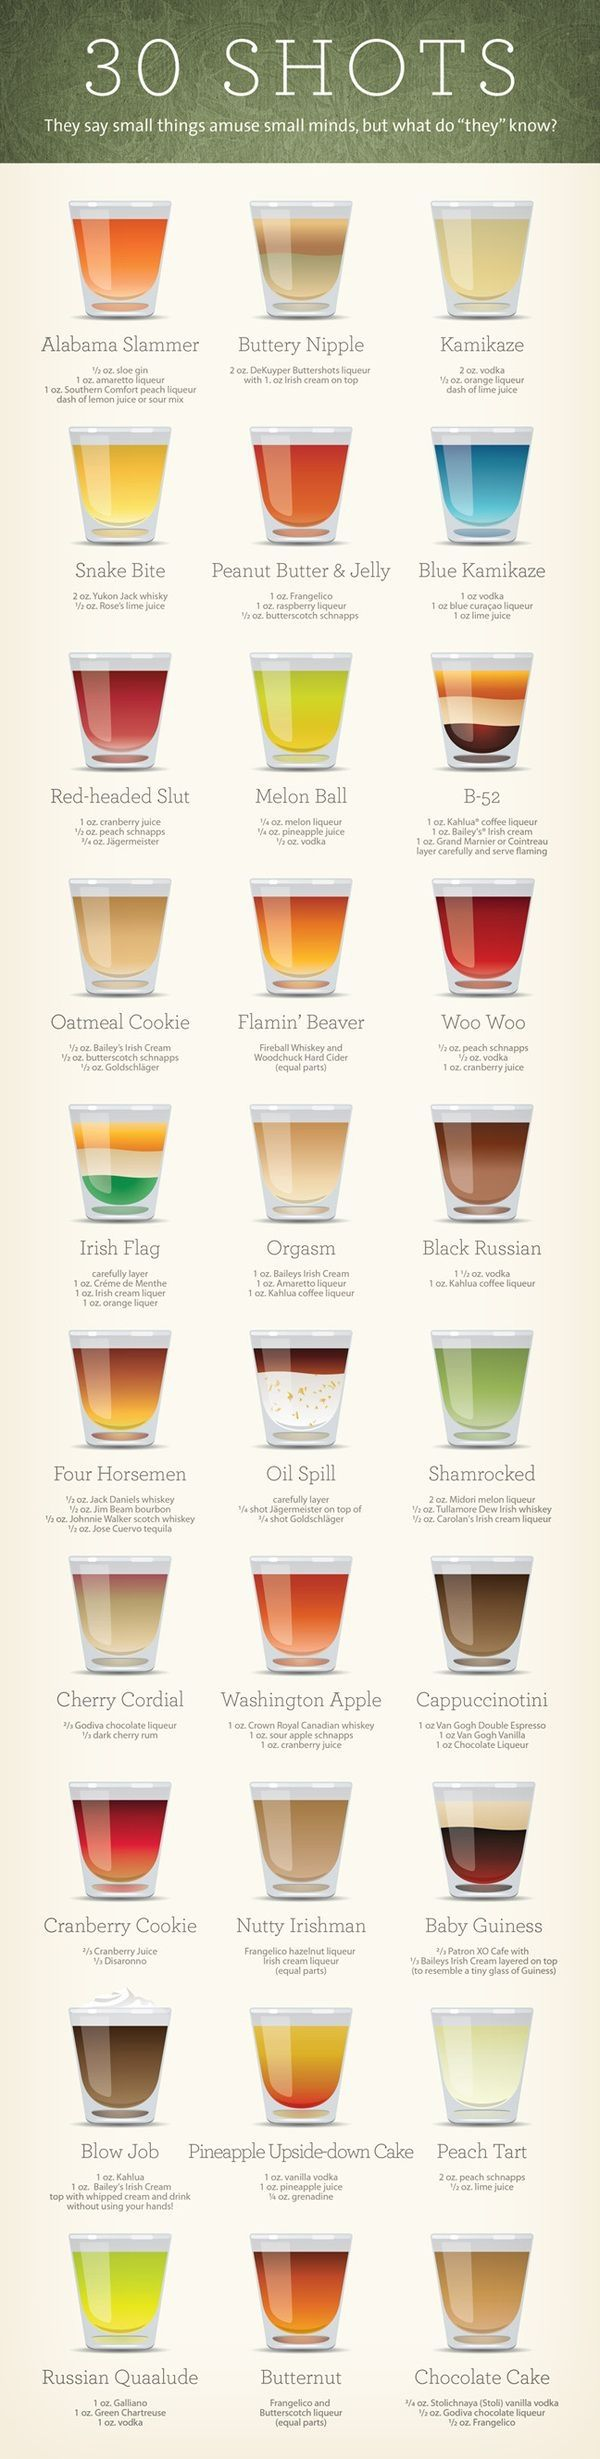 Shot Recipes alcohol recipe recipes ingredients easy recipes recipe ideas alcohol recipe alcohol recipes... @Samantha Sloat great guide, you have to read some of these!! Some of the names are too funny!!